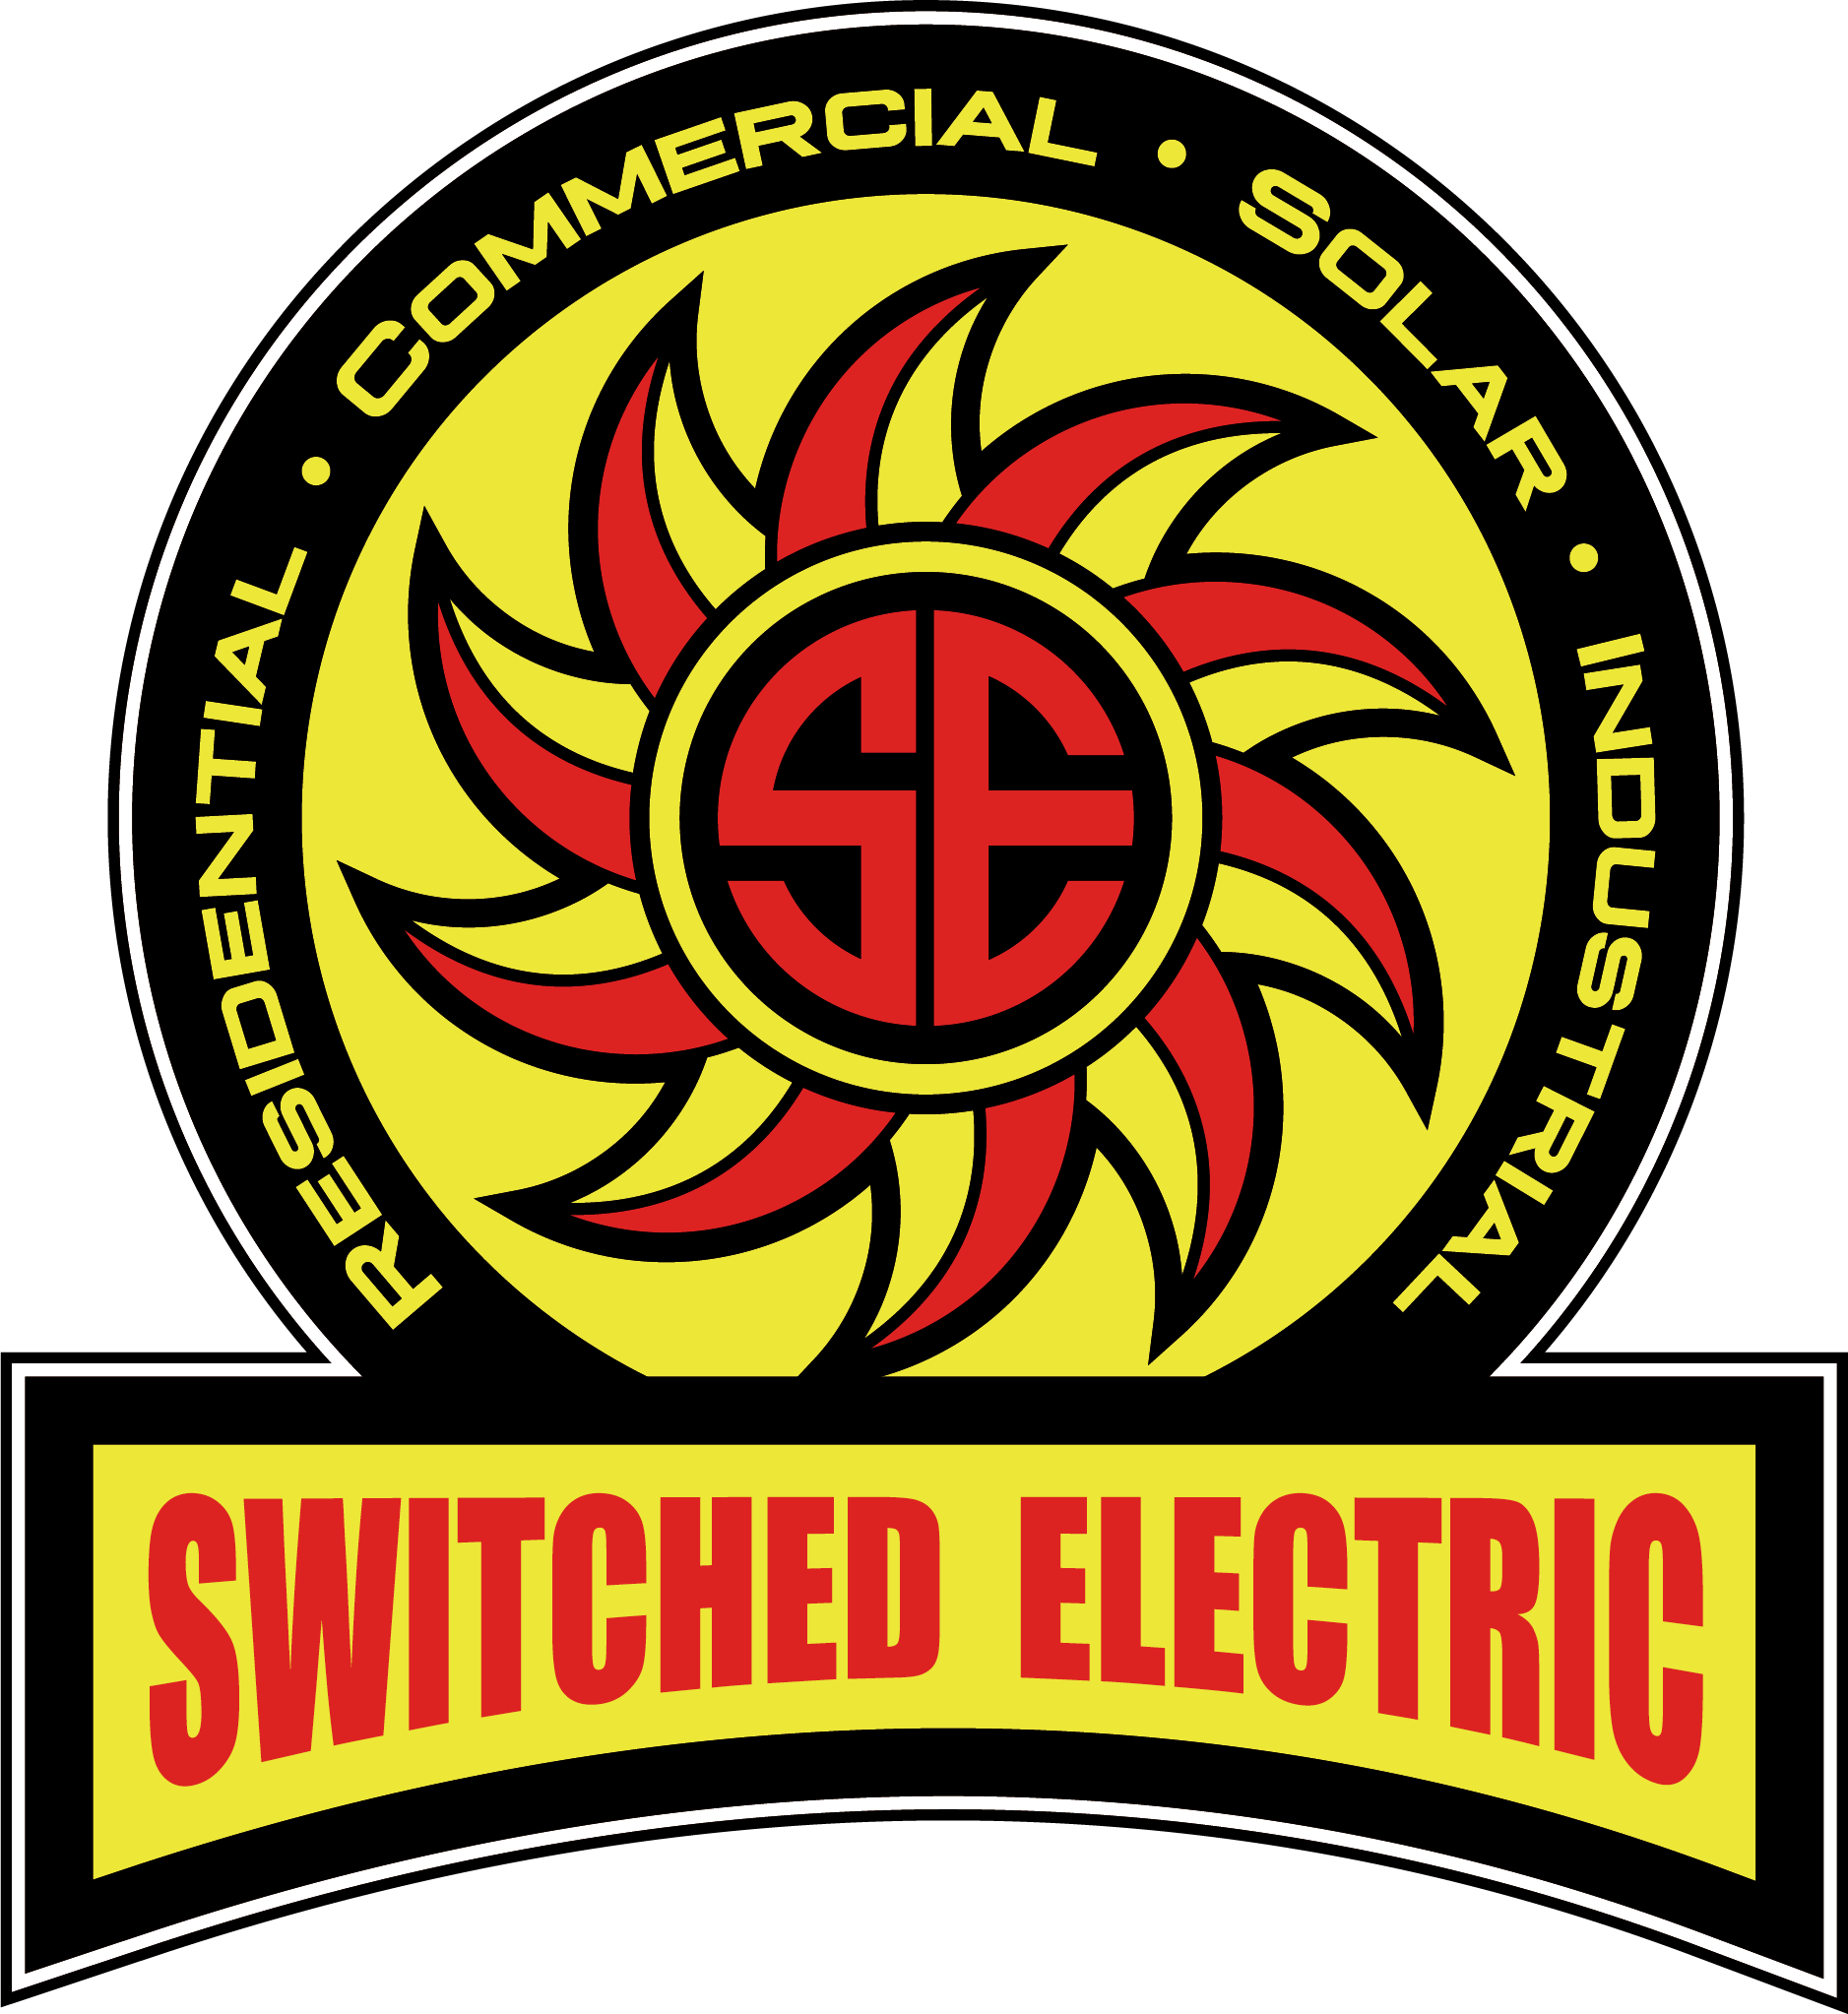 Switched Electric logo